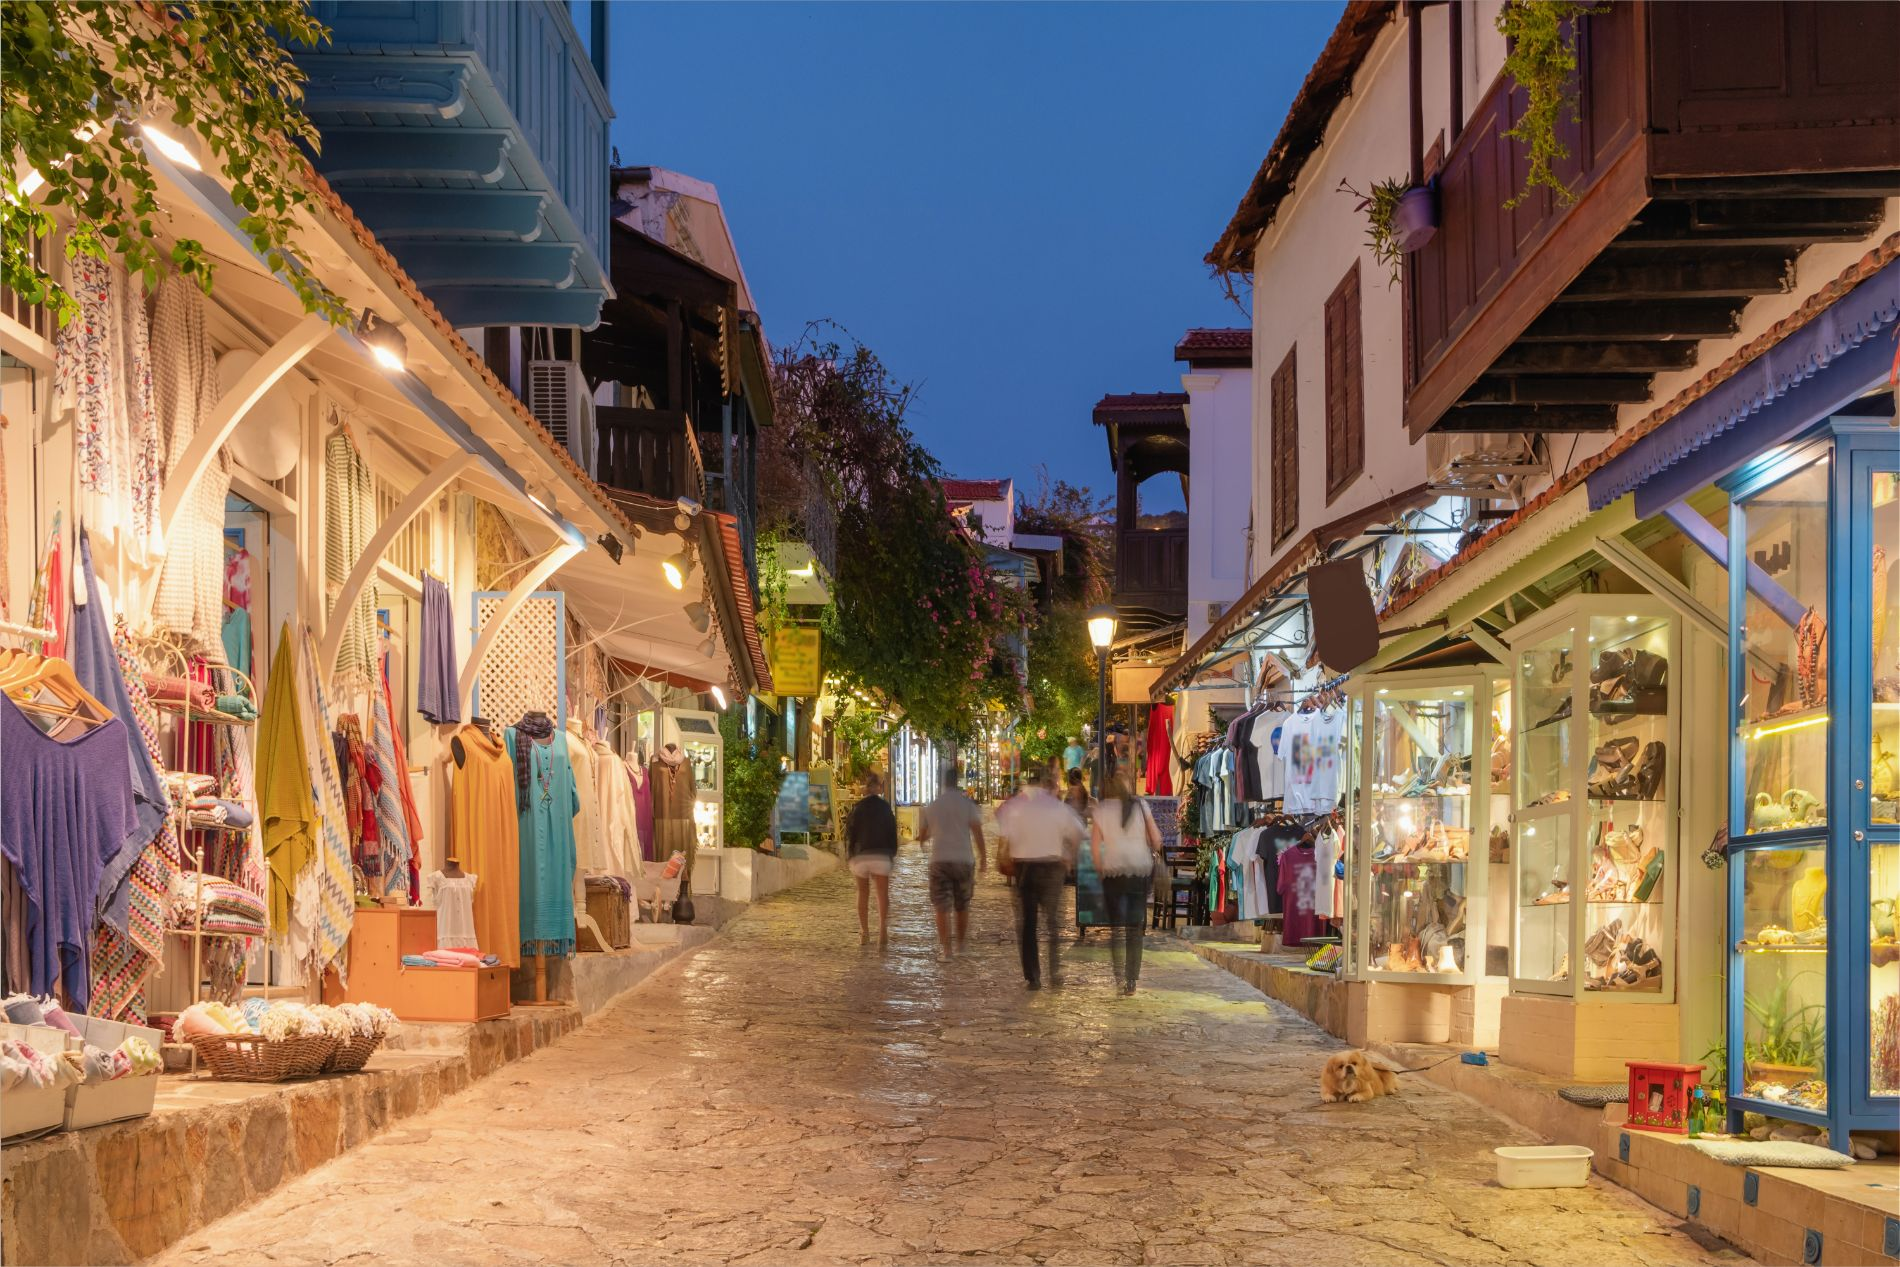 Street view in the Kas old town with boutique shops at evening. Kas Town is popular tourist destination in Turkey